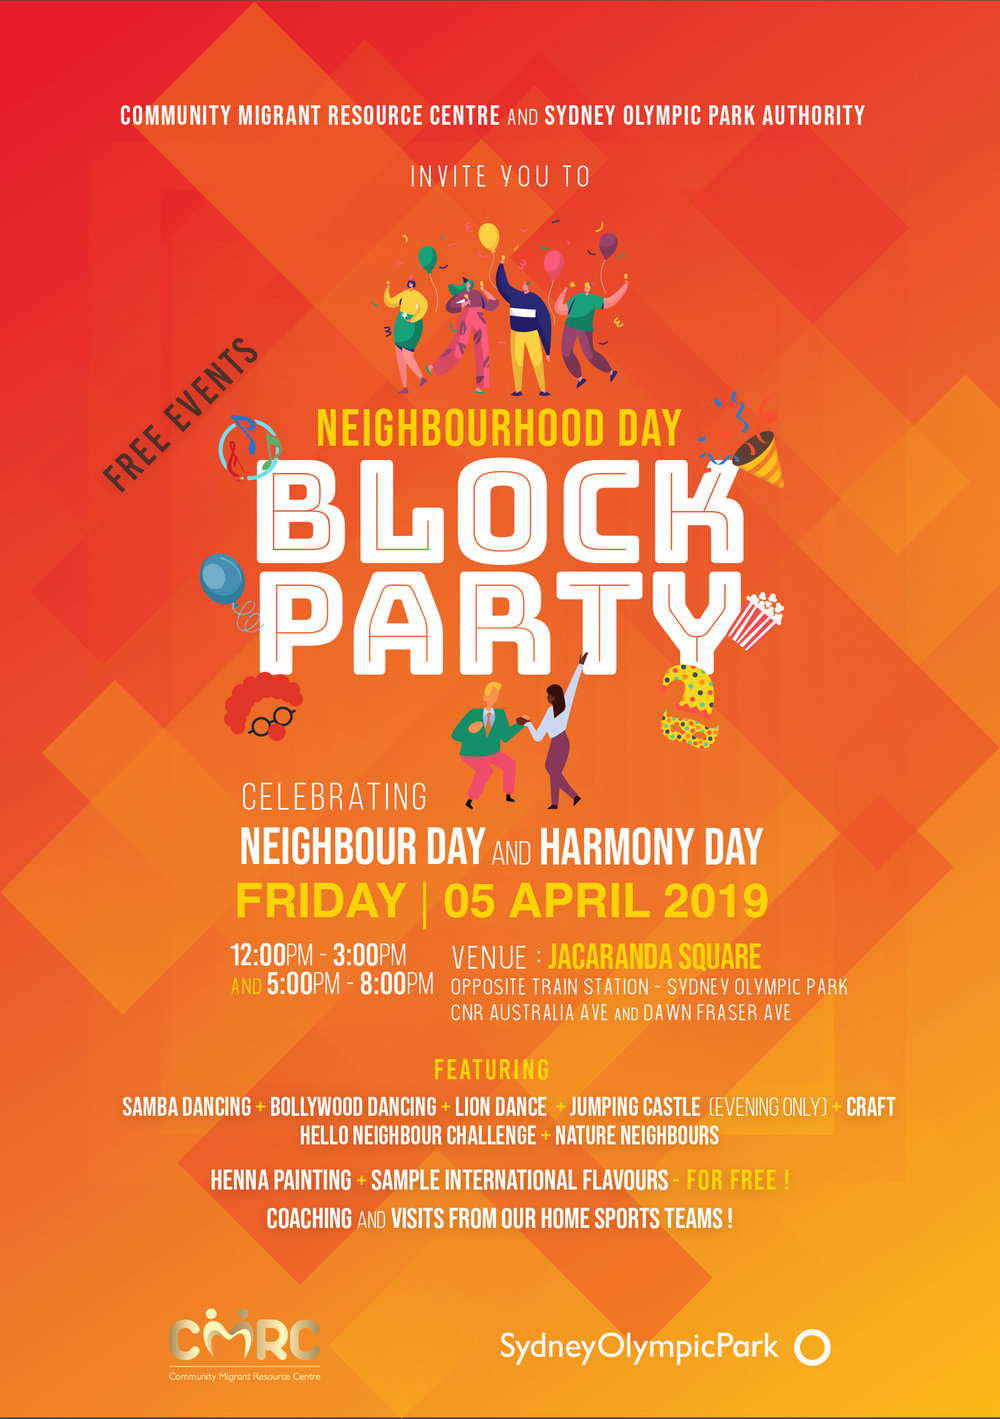 CMRC SOPA Neighbourhood Day Block Party Flyer.jpg